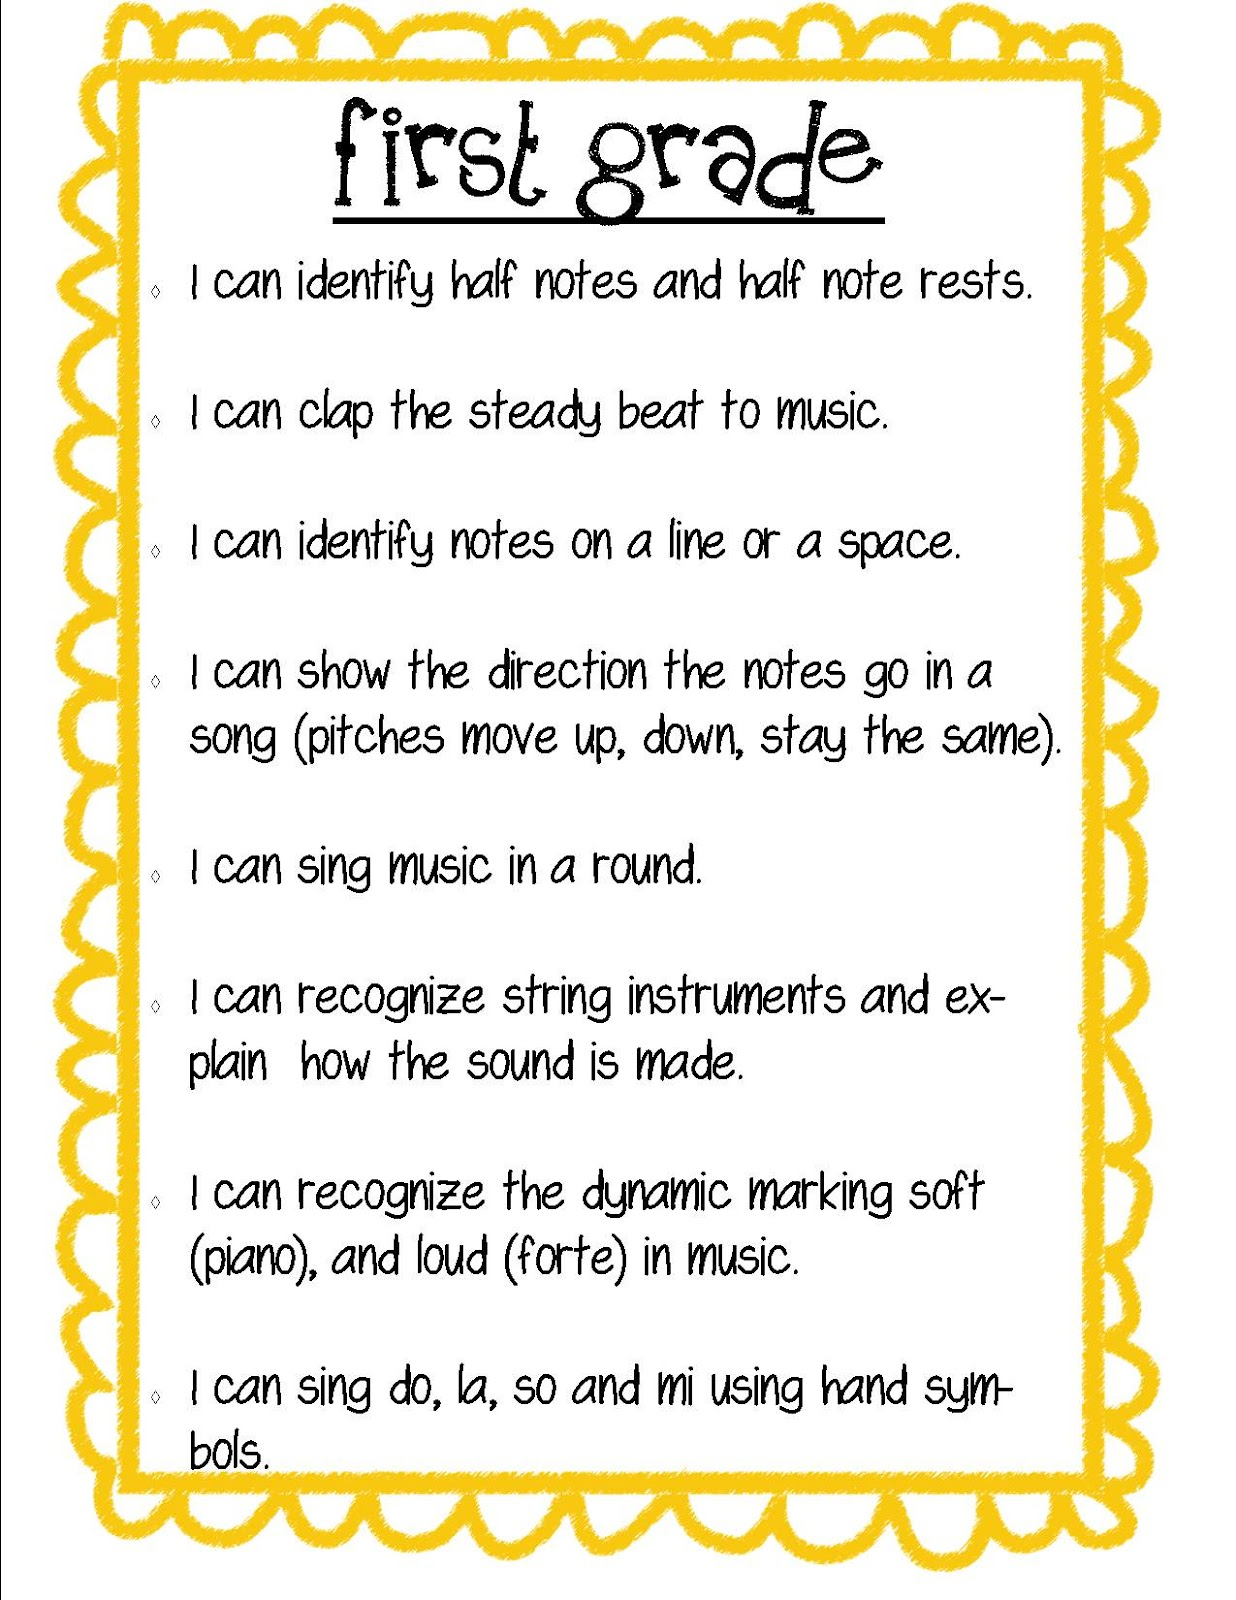 Worksheet Stories For Second Graders To Read worksheet short stories second grade mikyu free for first graders scalien to read second